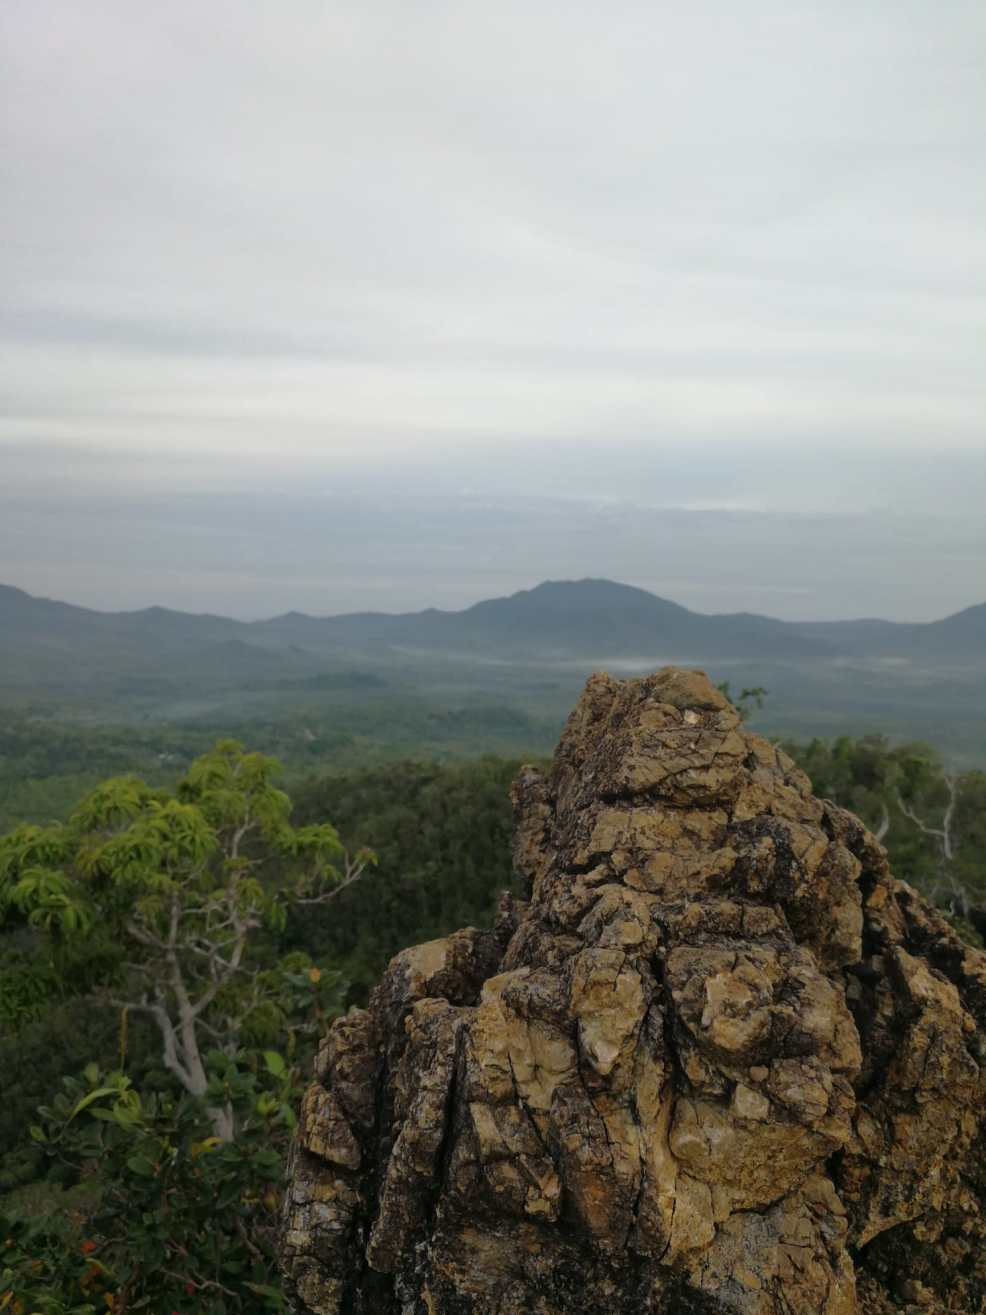 Mt. Magarwak, things to do in Puerto Princesa, Puerto Princesa itinerary